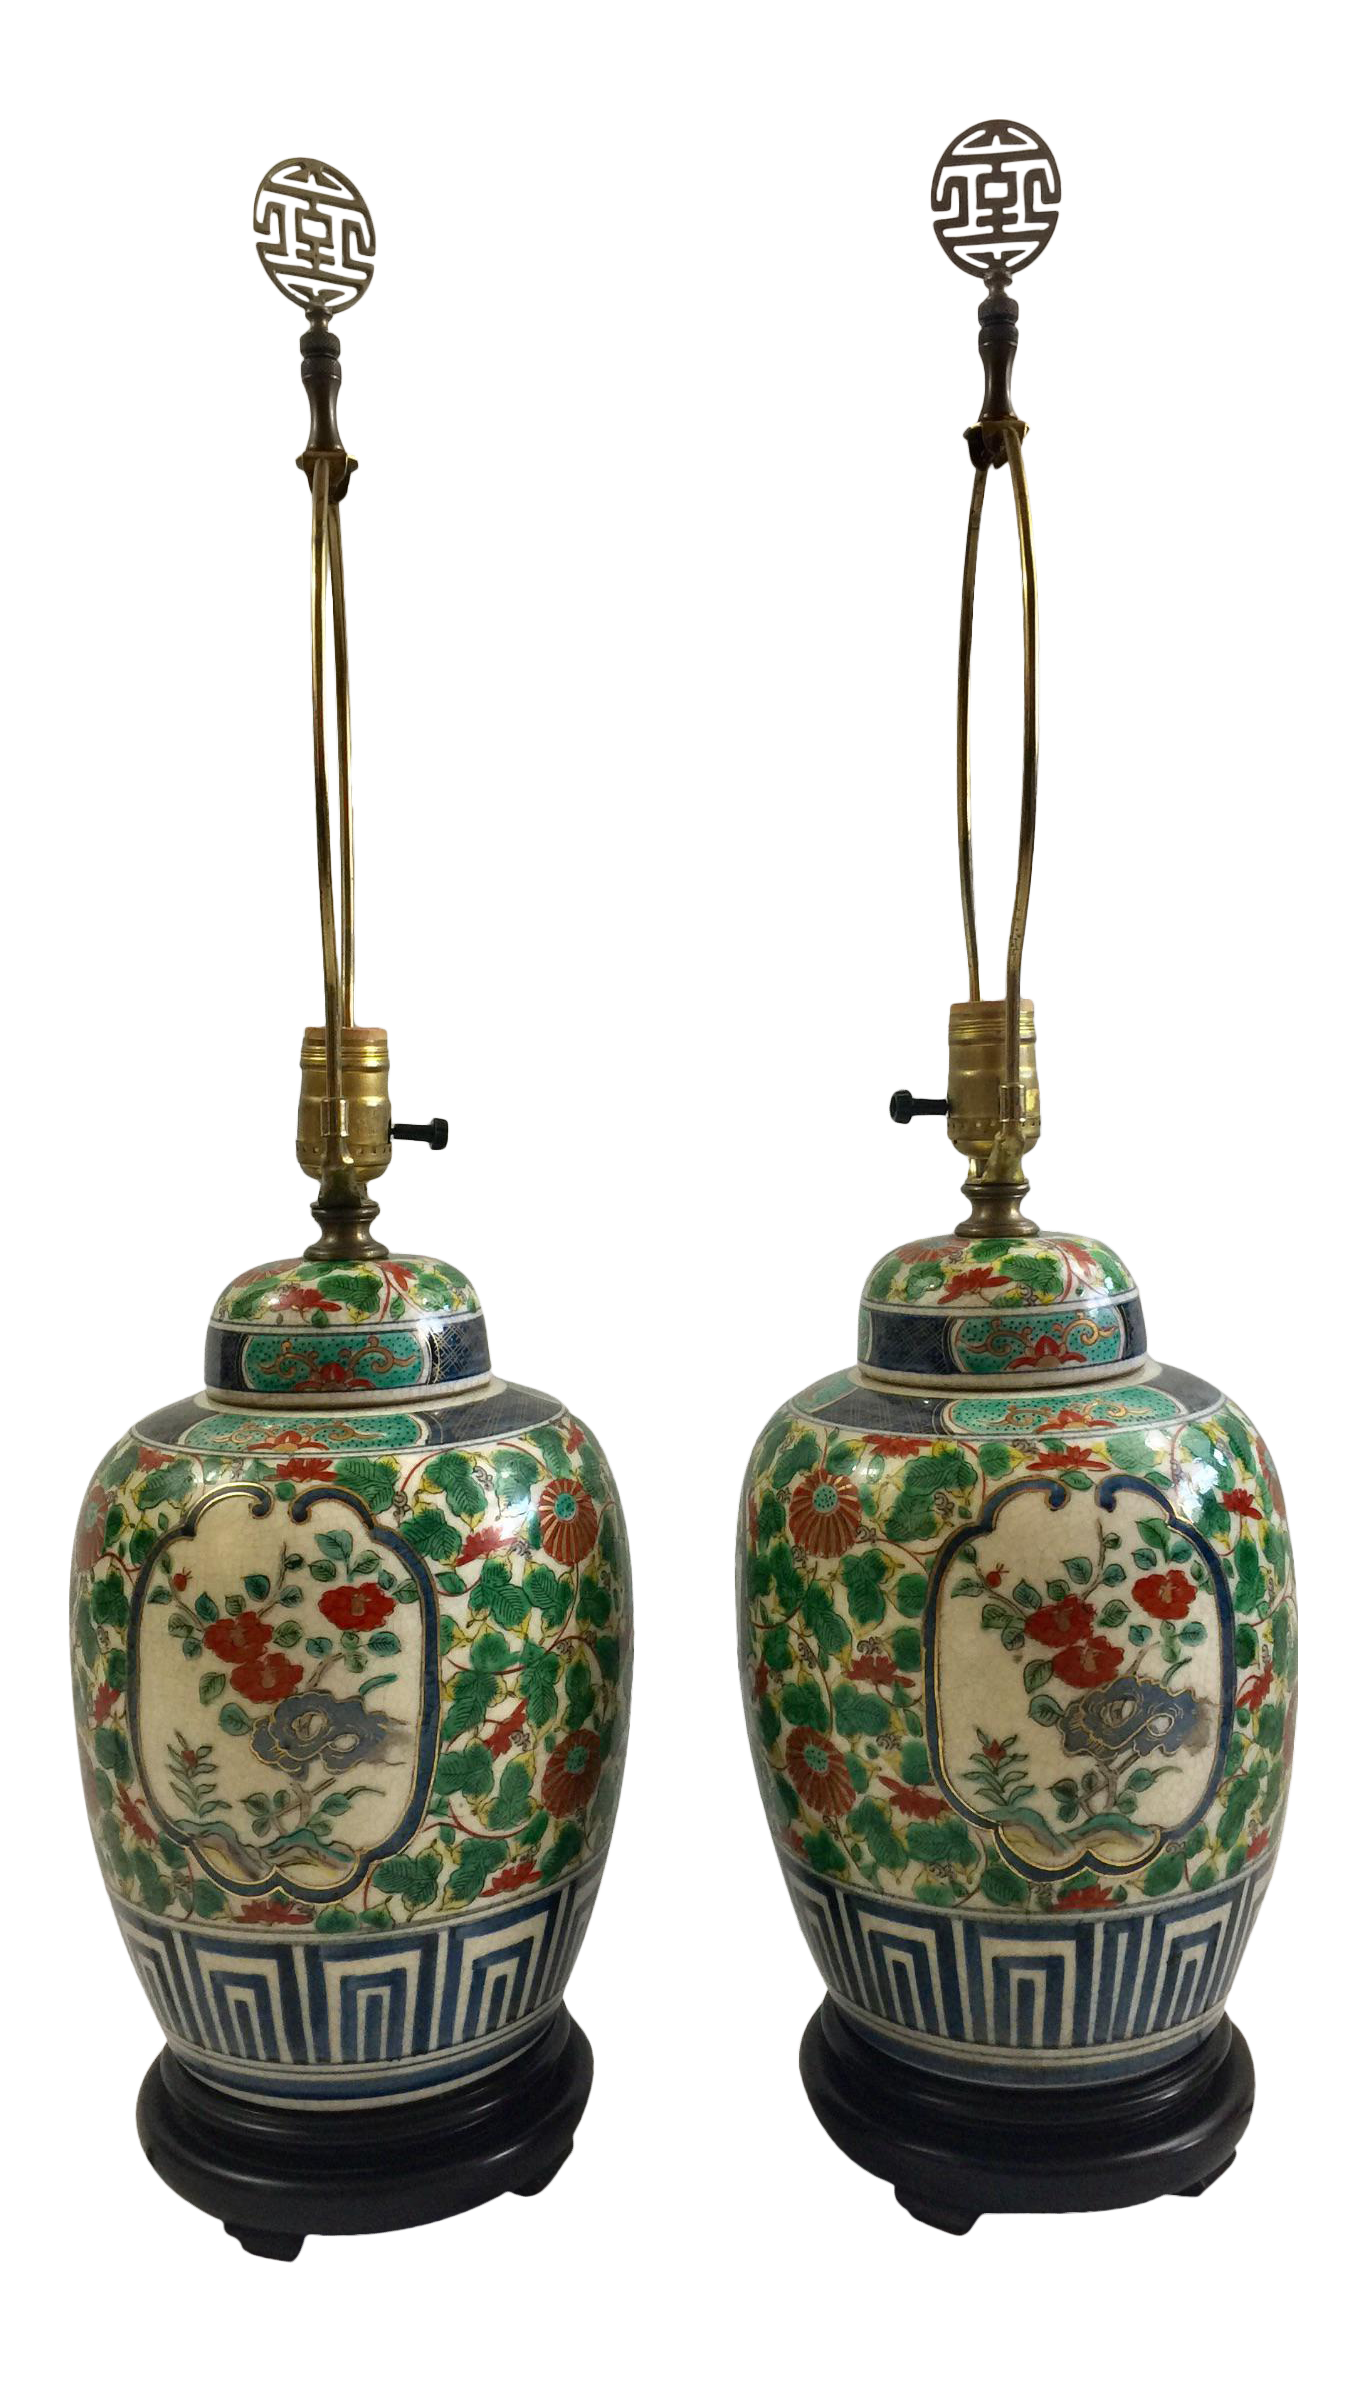 Vintage porcelain ginger jar table lamps a pair chairish geotapseo Gallery